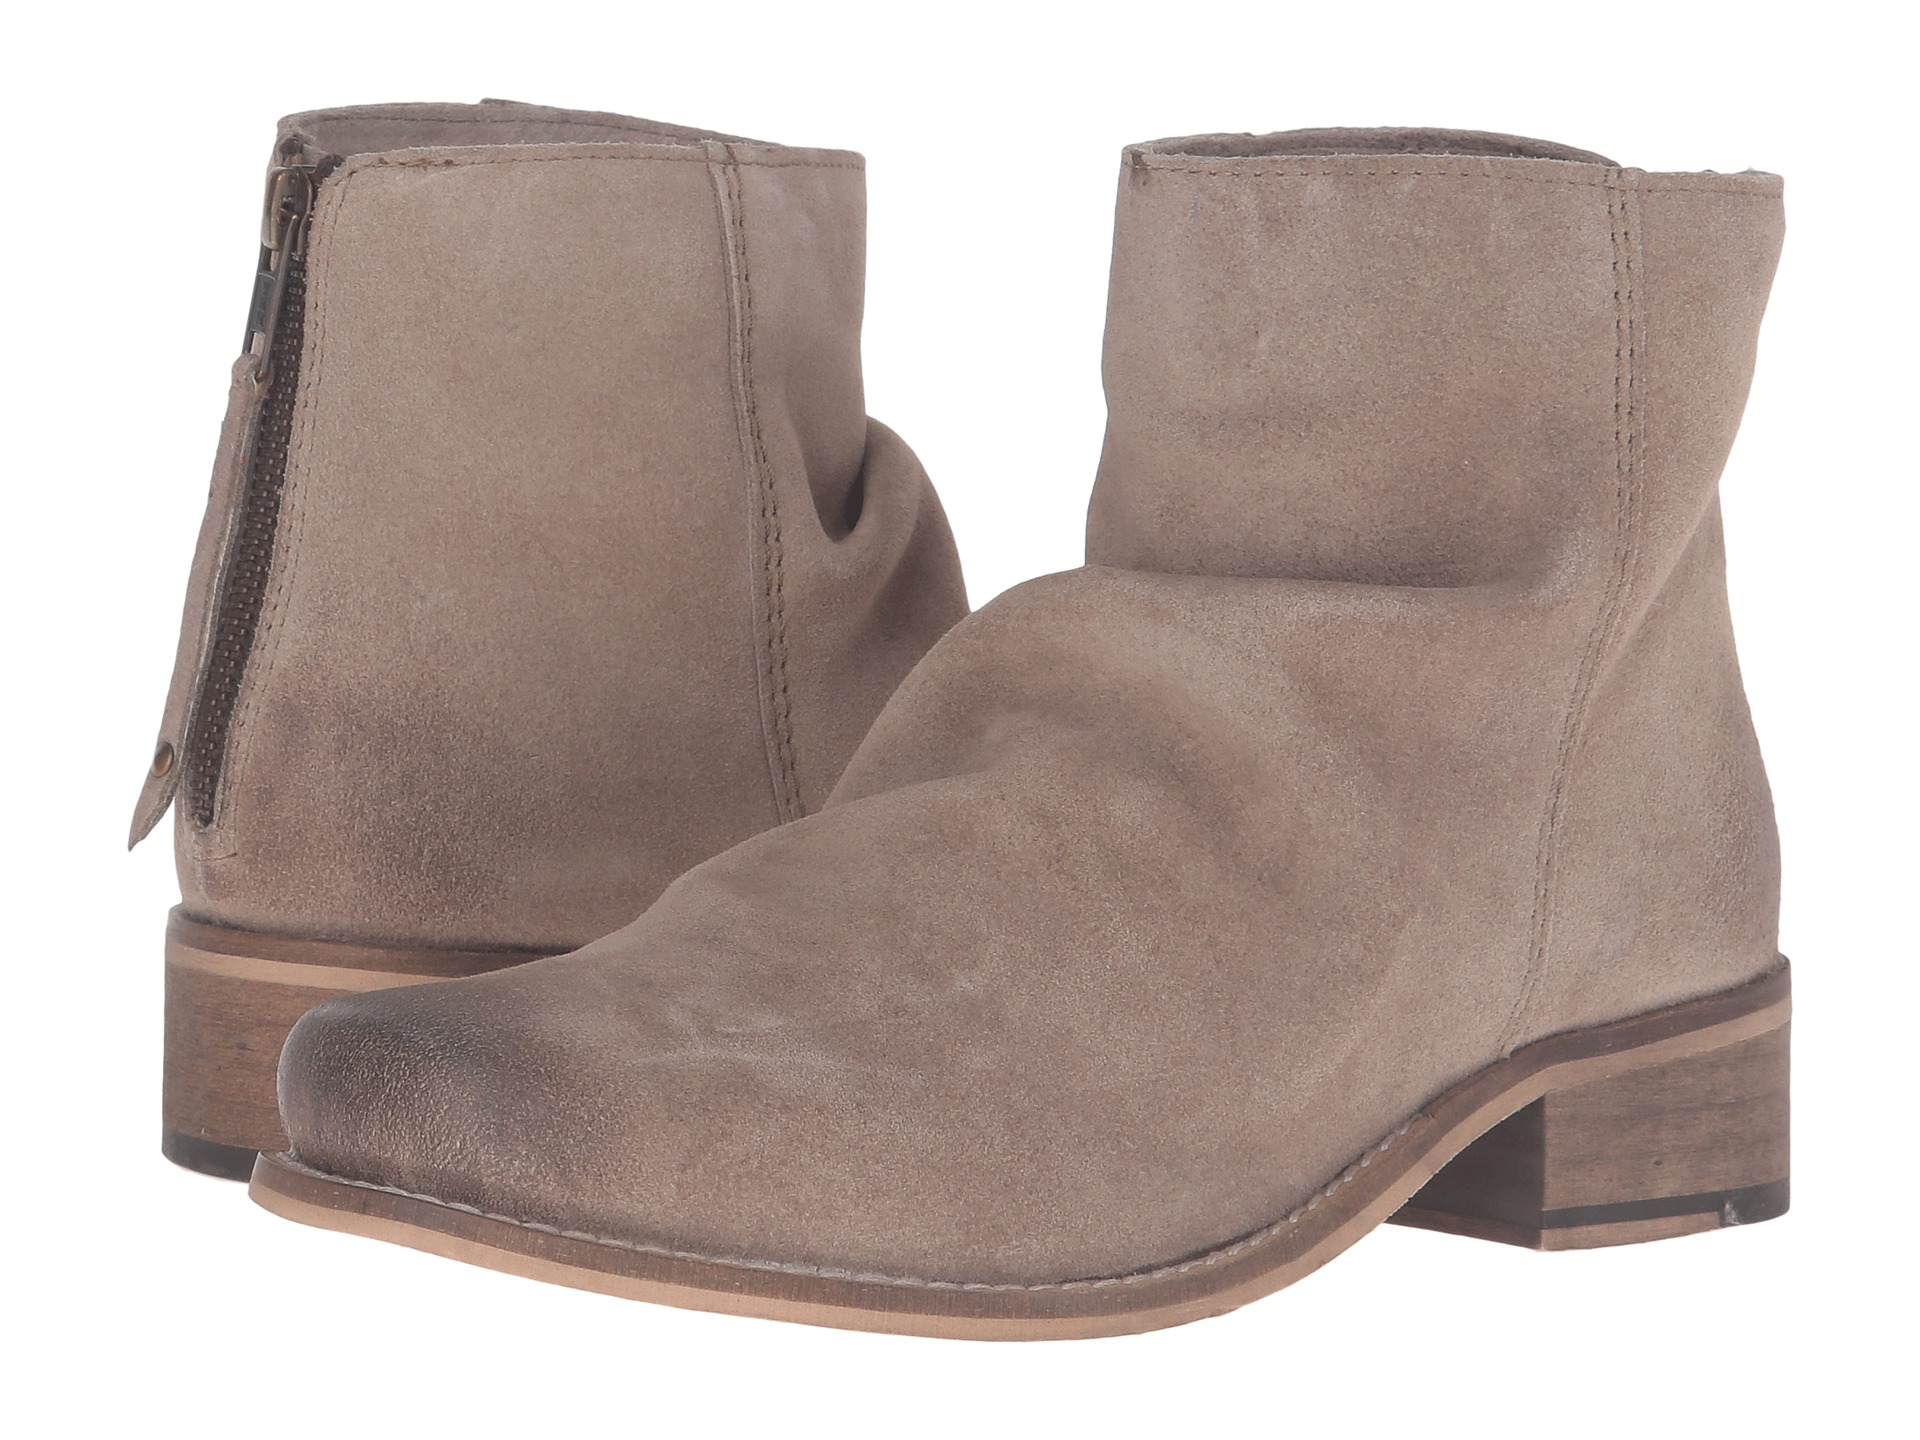 Ariat Unbridled Sloan at 6pm.com